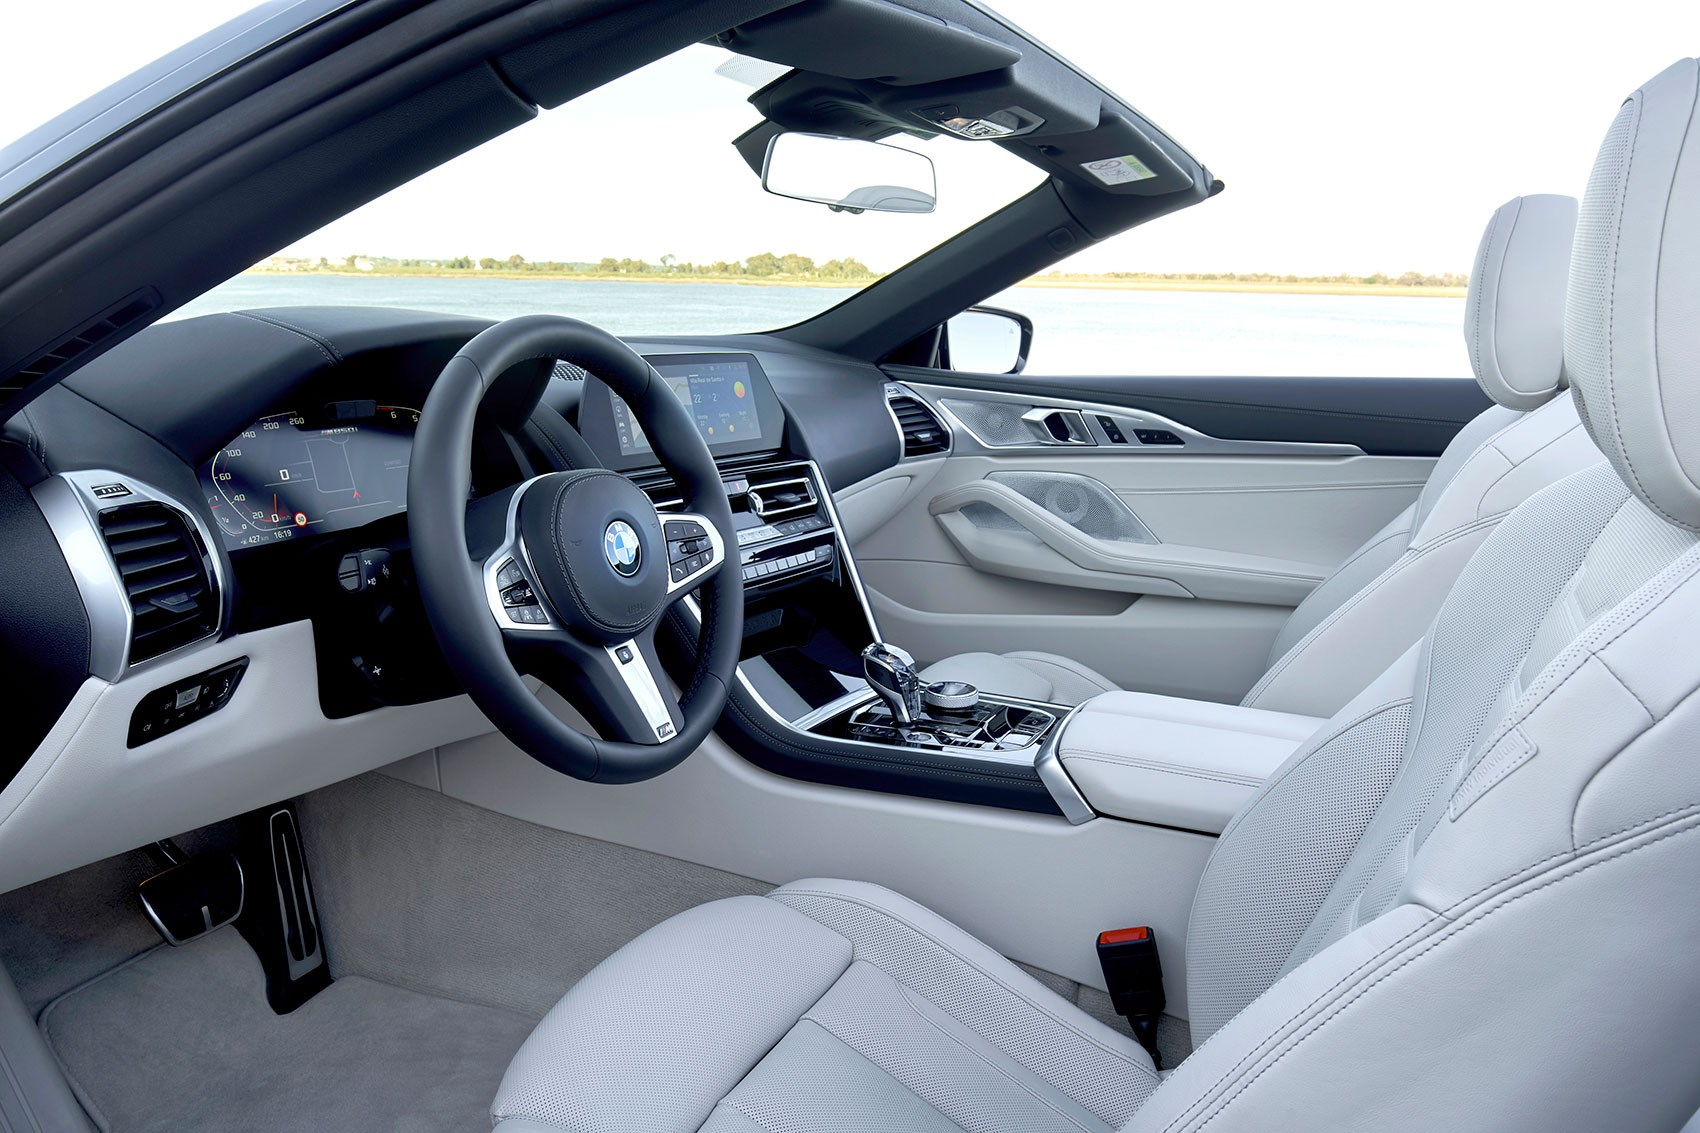 BMW 8-series Convertible interior: a plush cockpit